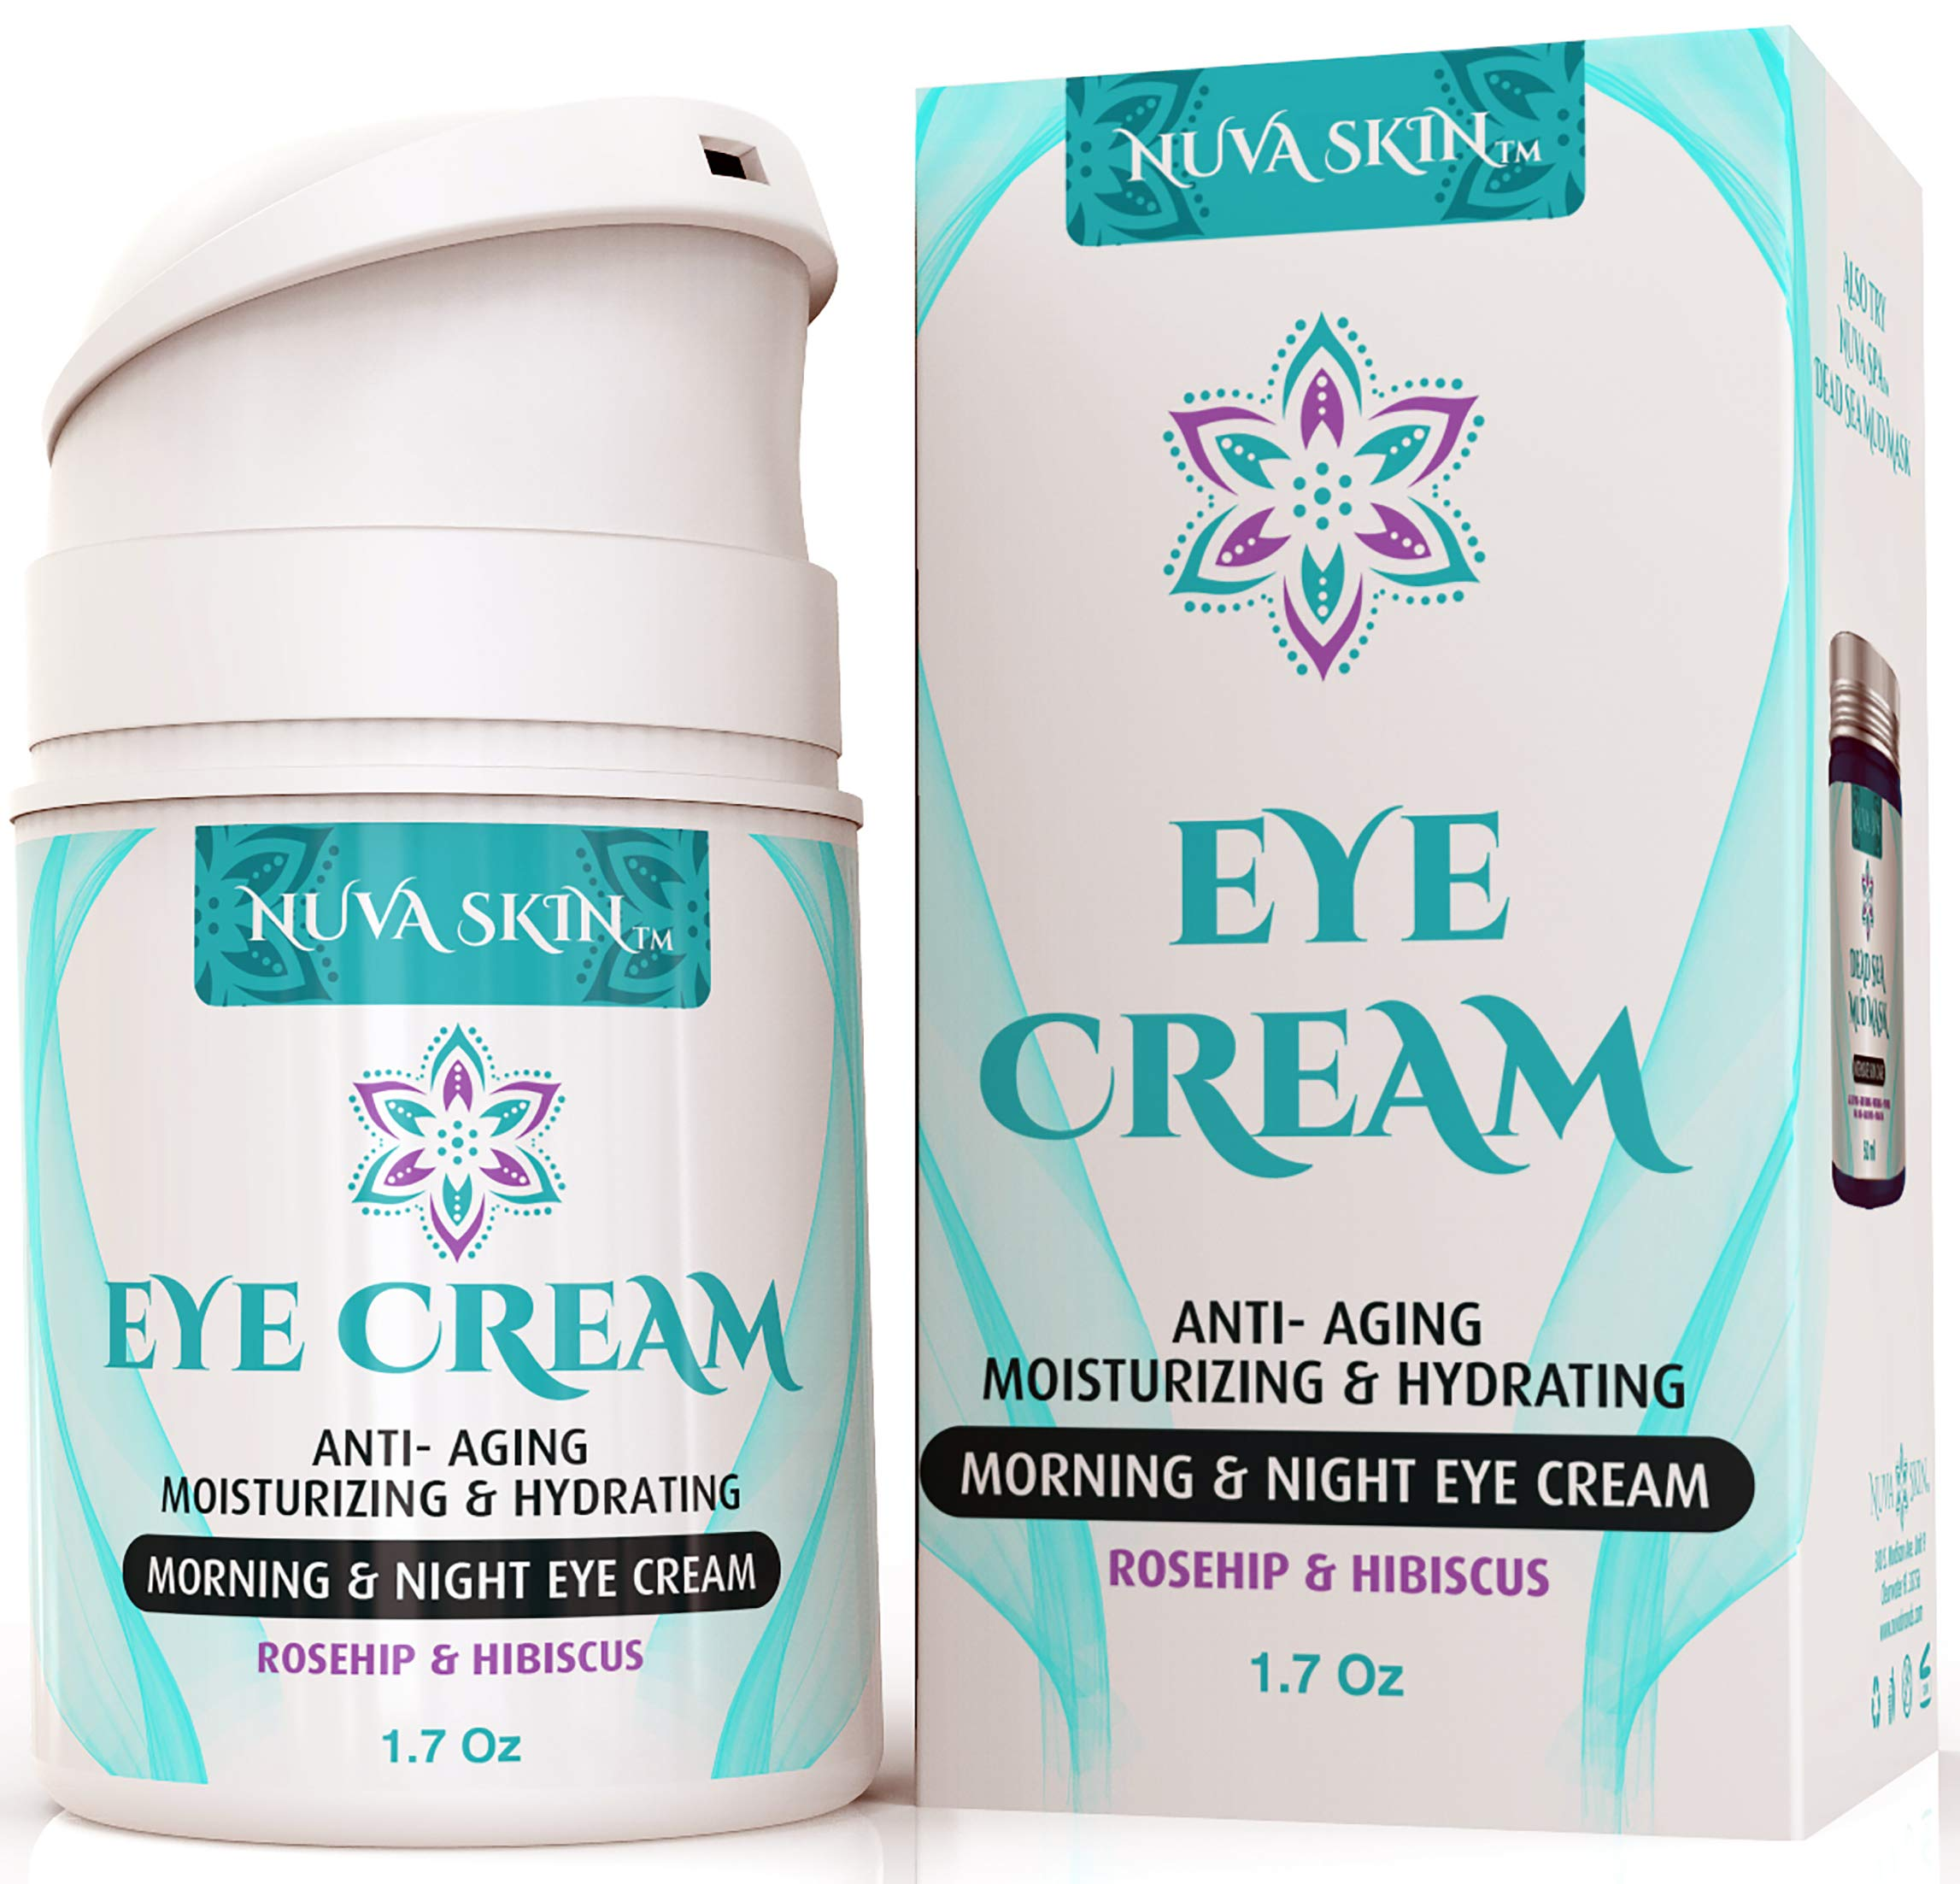 9a801516019 Nuva Skin Intensive Eye Cream with Rosehip & Hibiscus – Anti-Aging Under  Eye Cream